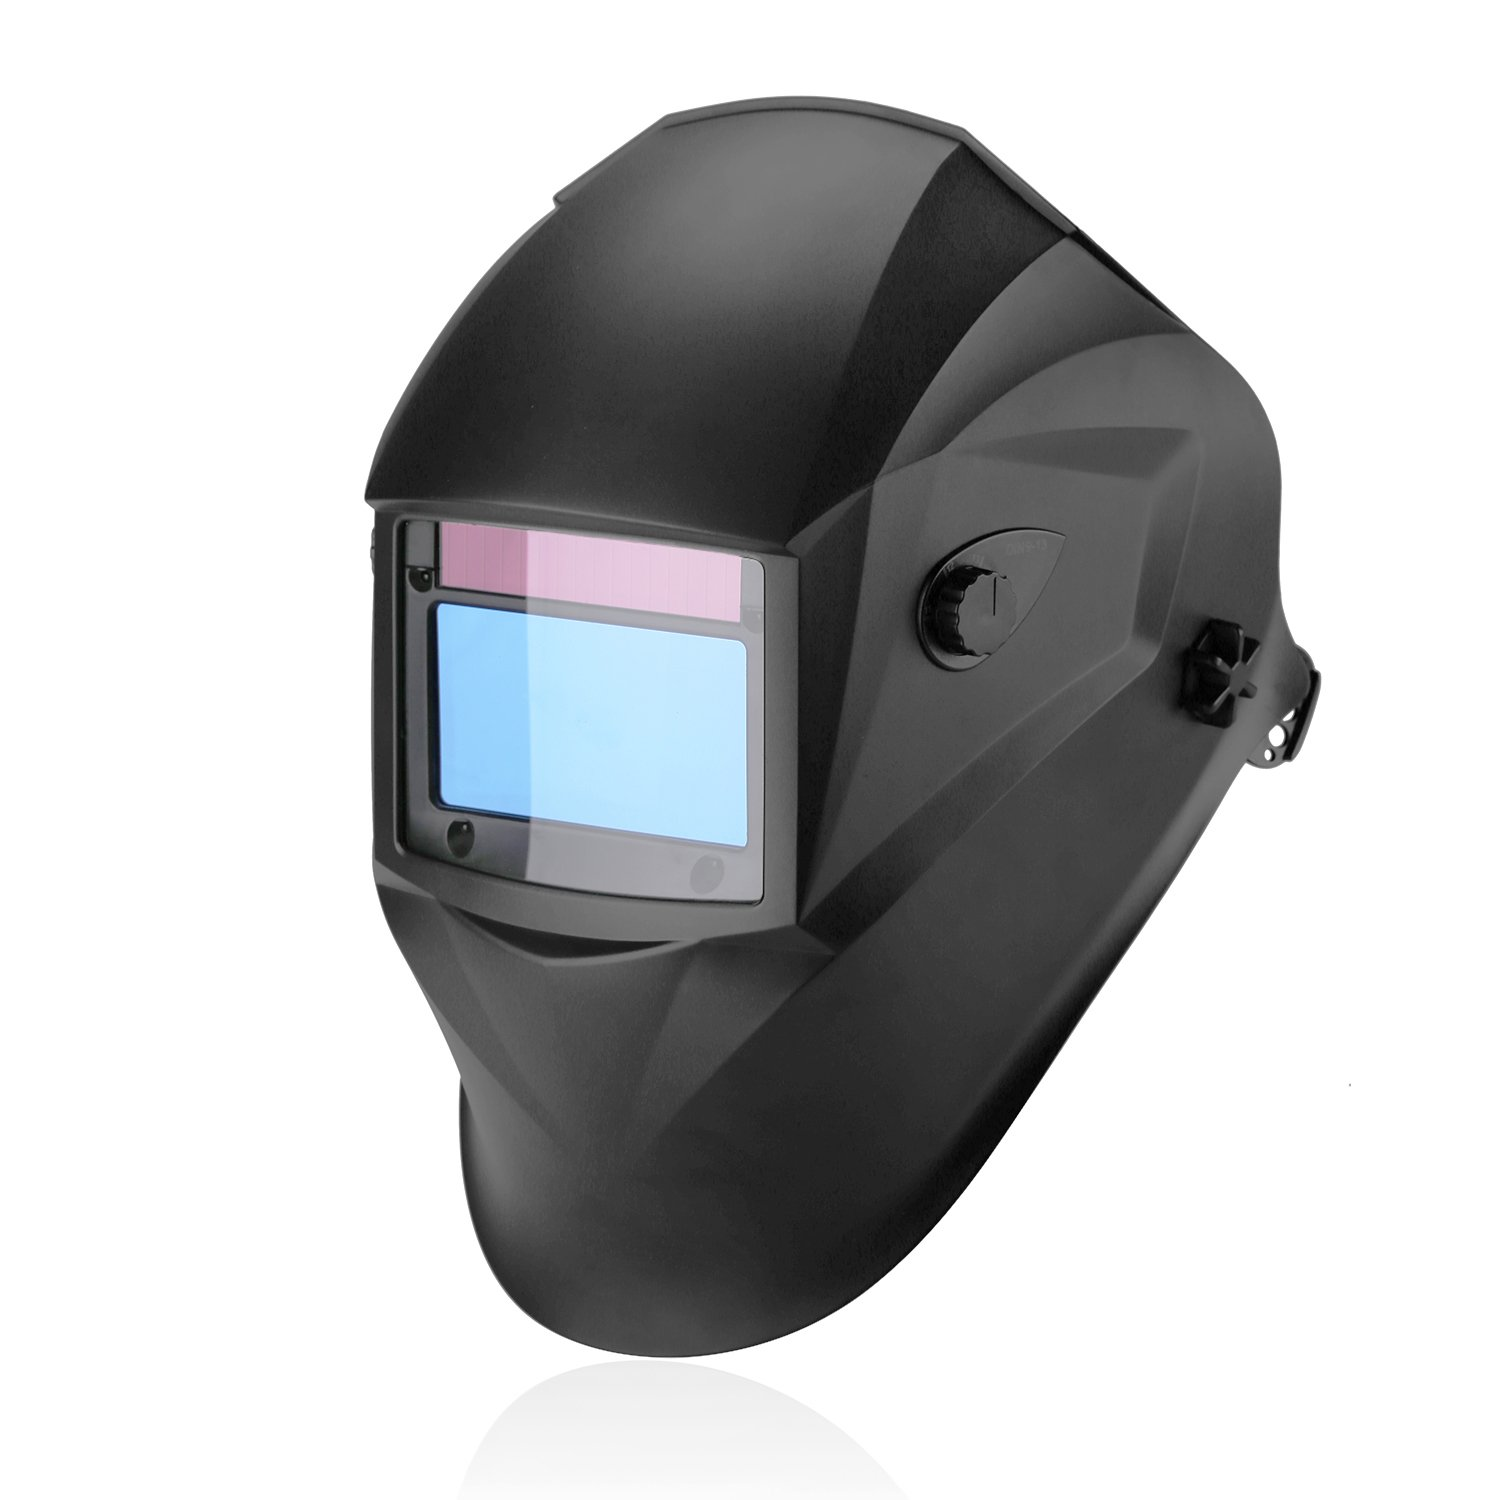 Auto Darkening Welding Helmet, 1/1/1/1 Solar Powered Welding Hood with Large View Area 3.94''x2.56'', Professional Grinding Welder Mask with 4 Arc Sensor, Wide Shade Range 3/4-13 for TIG MIG MMA Plasma by BESKAR